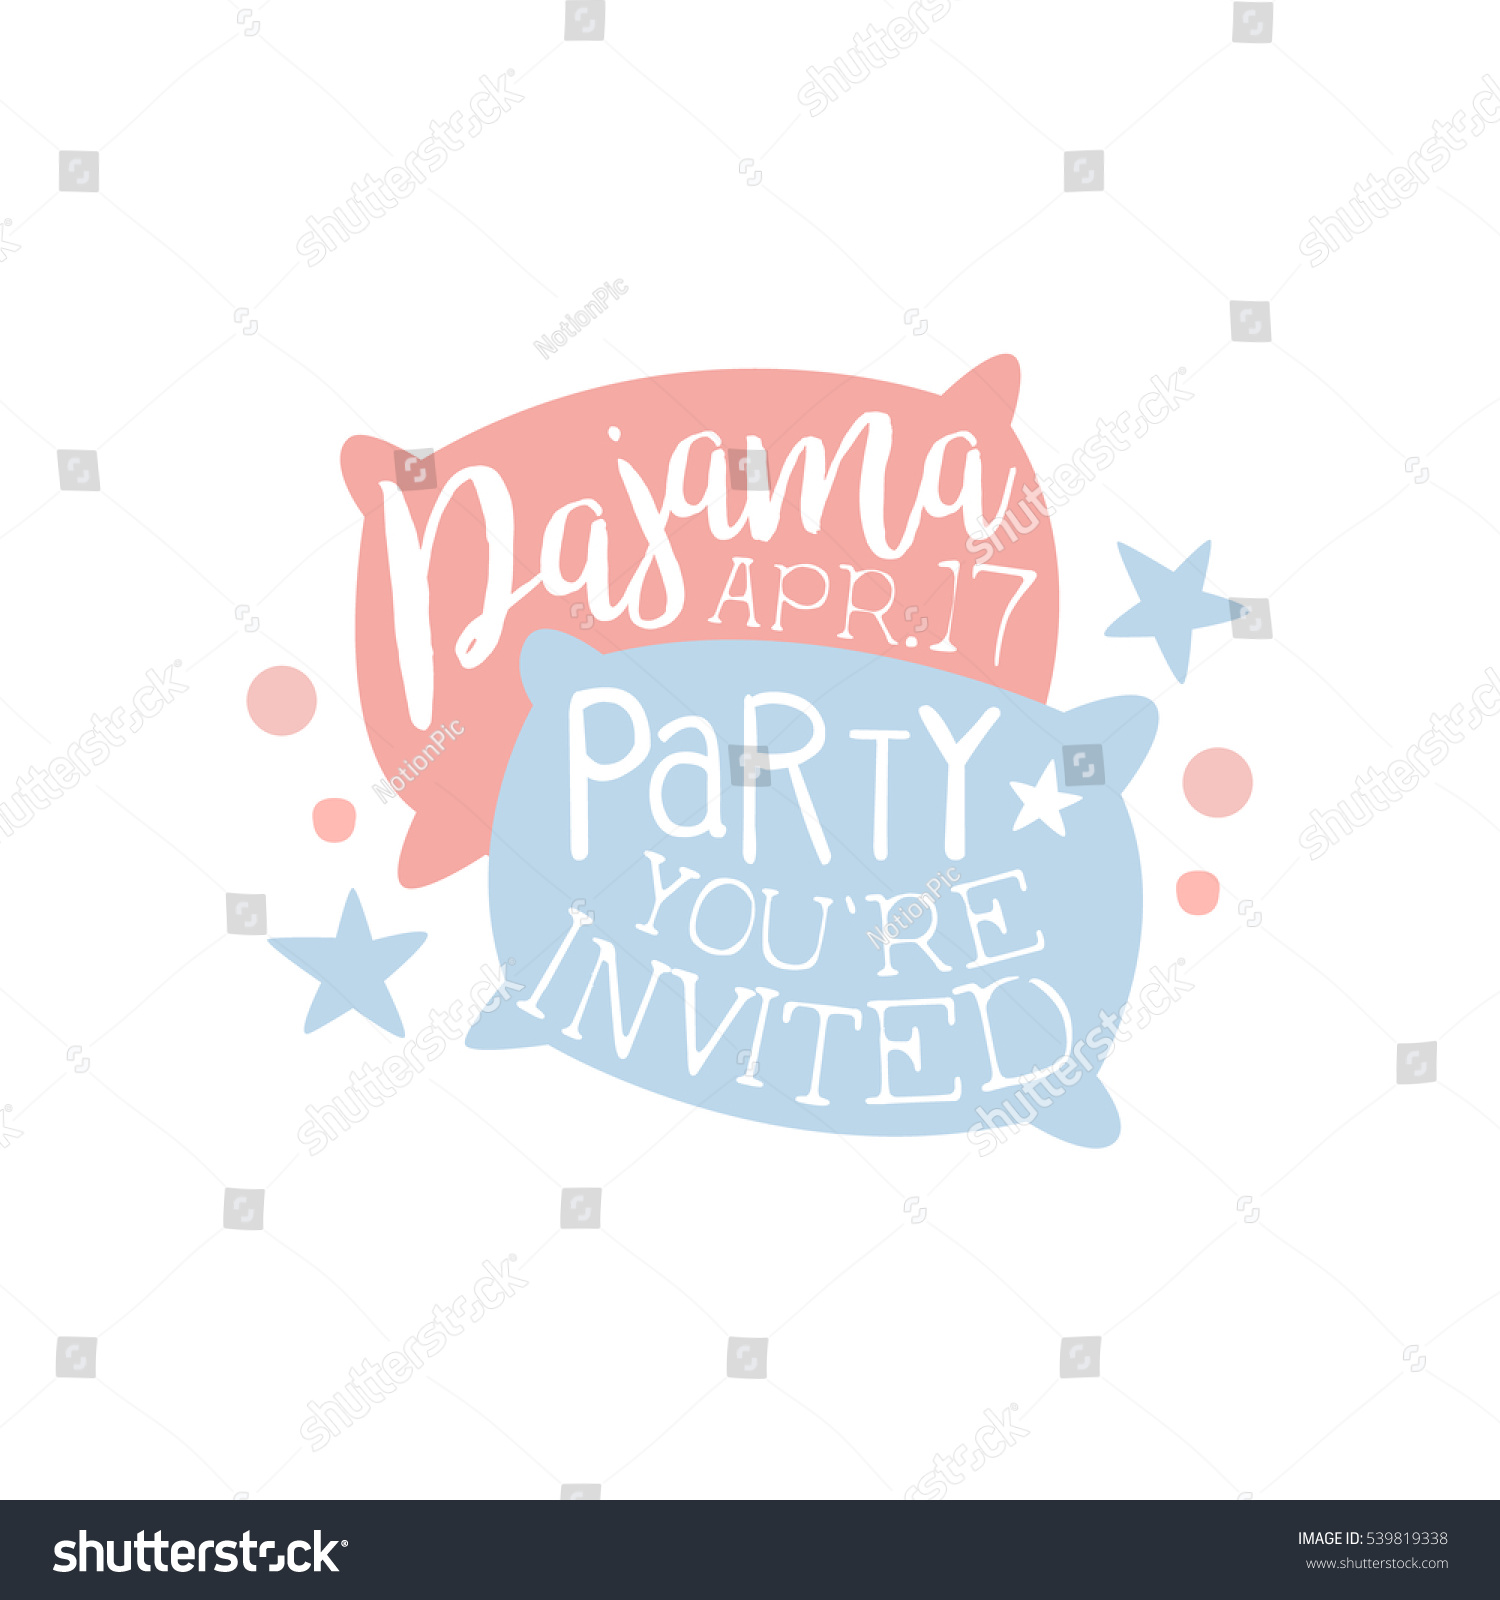 Girly Pajama Party Invitation Card Template Stock Vector 539819338 ...